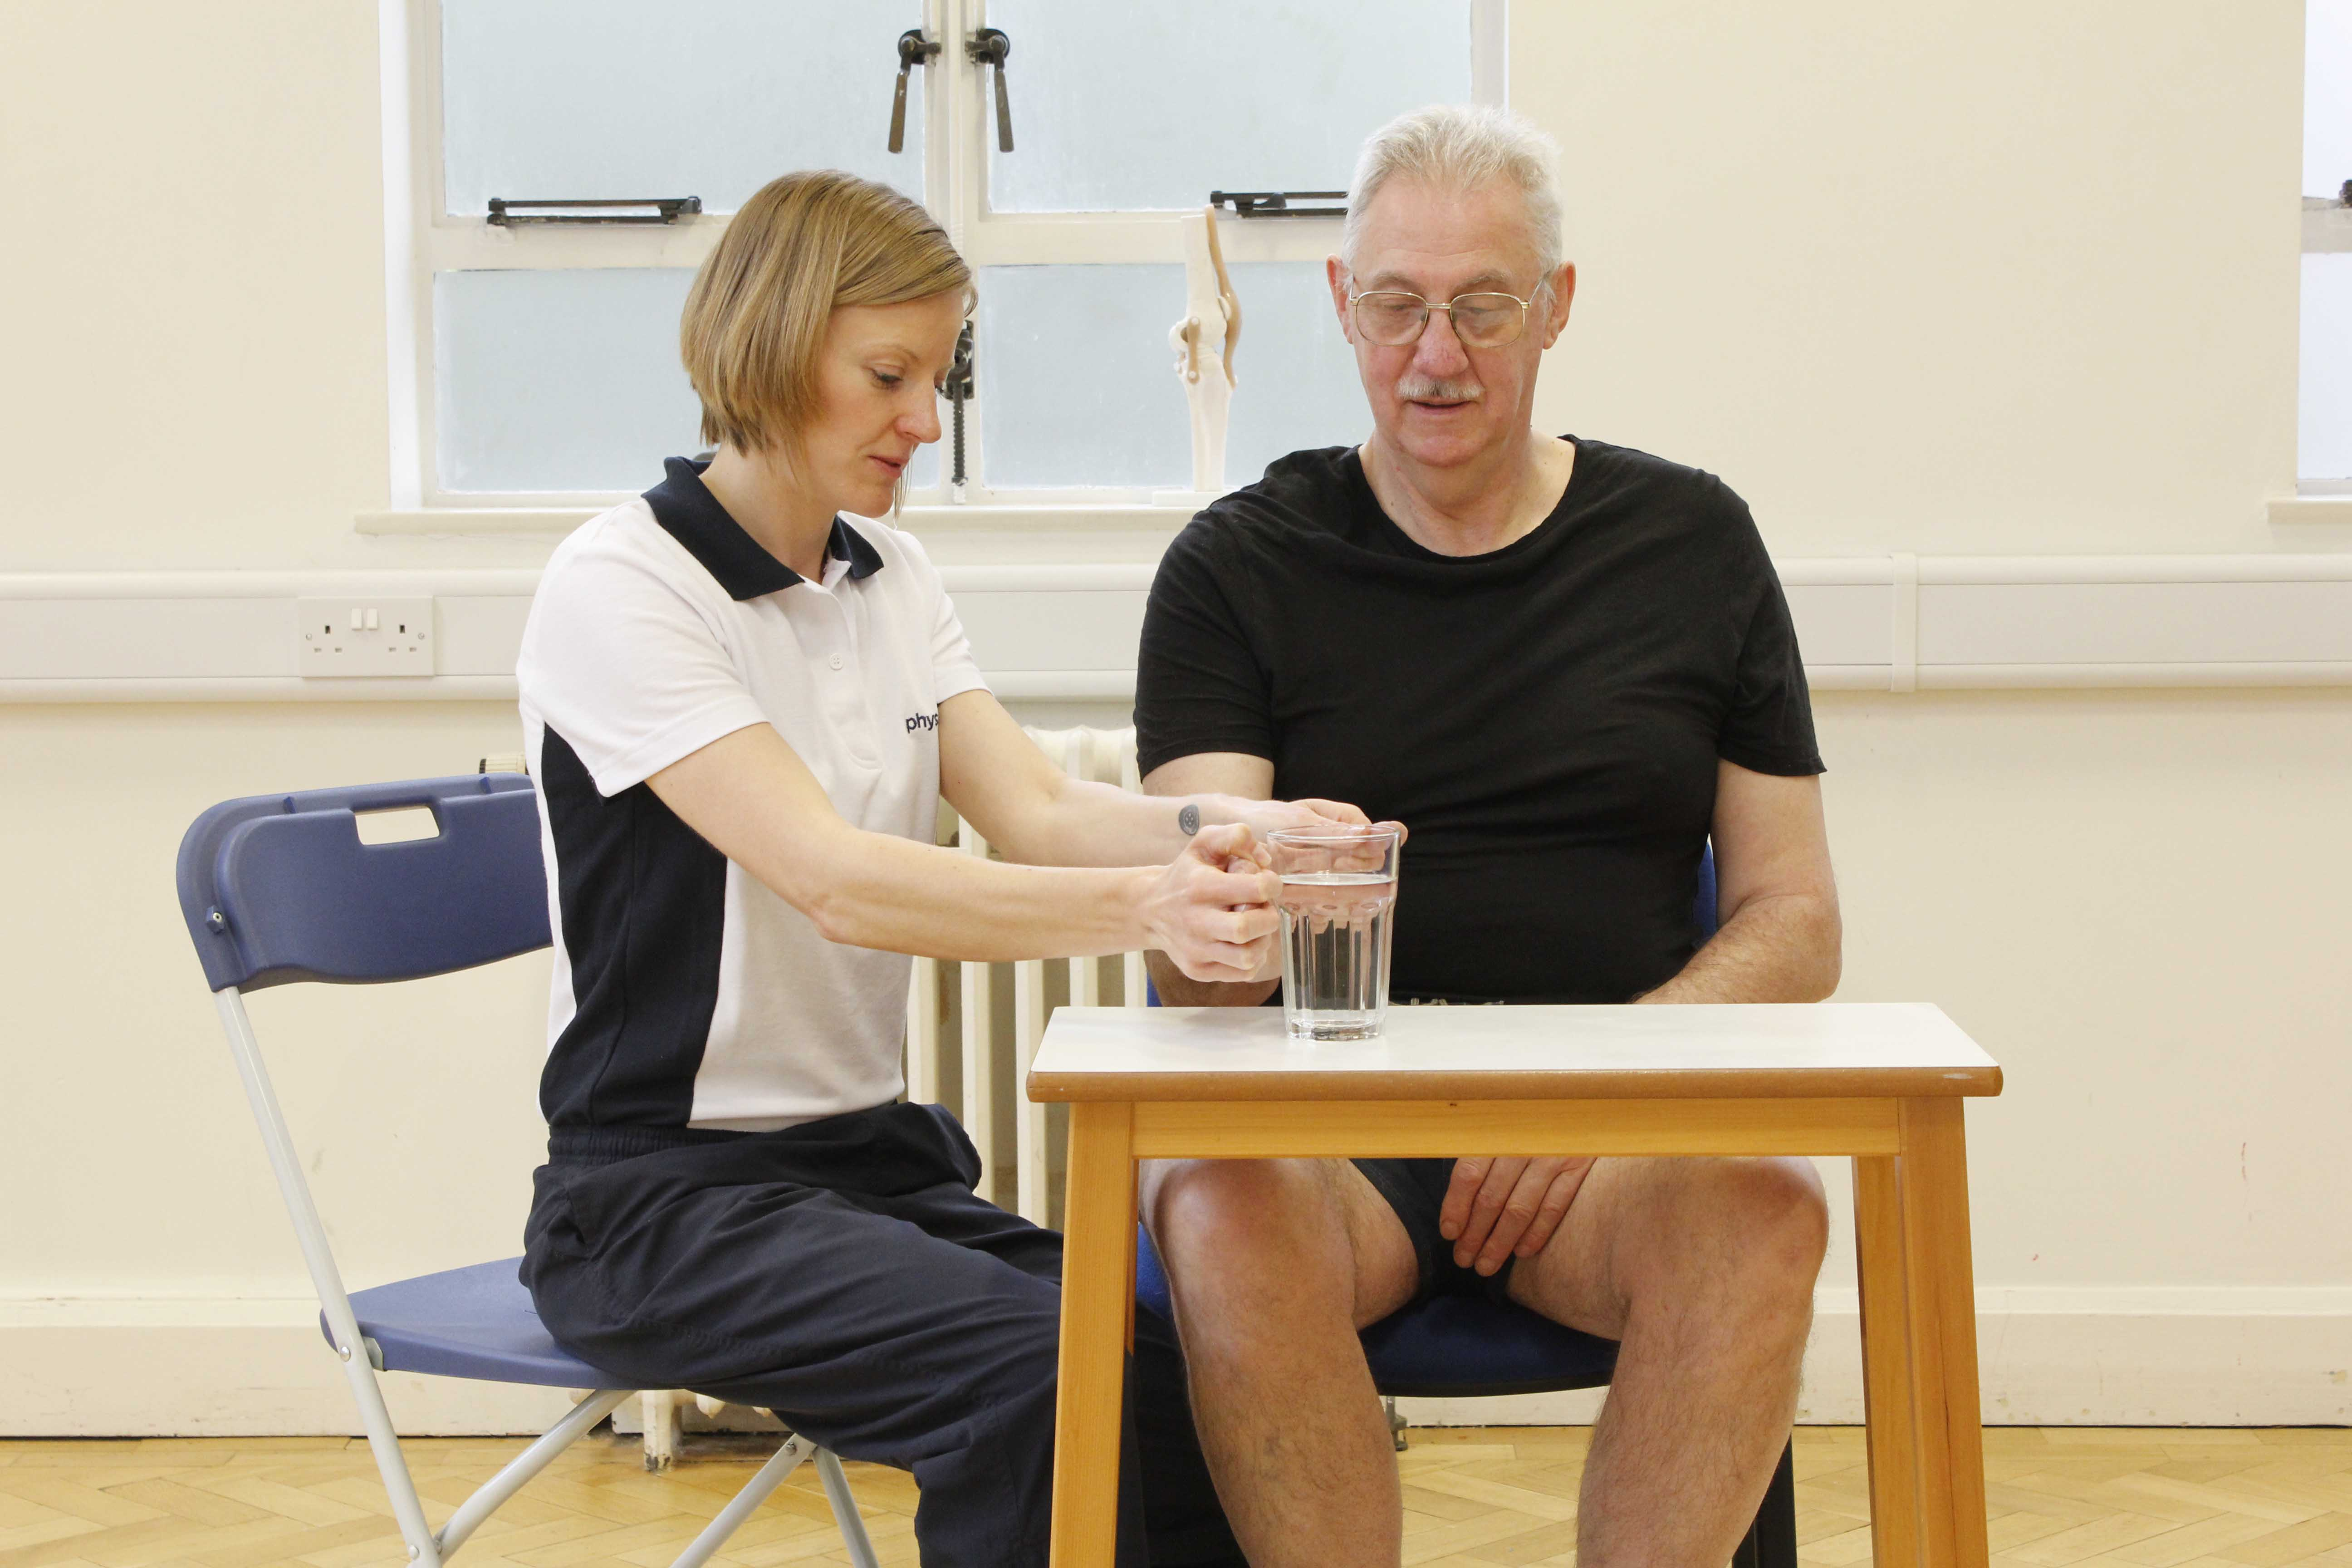 Functional movement rehabilitation exercises supervised by a specialist neurological physiotherapist